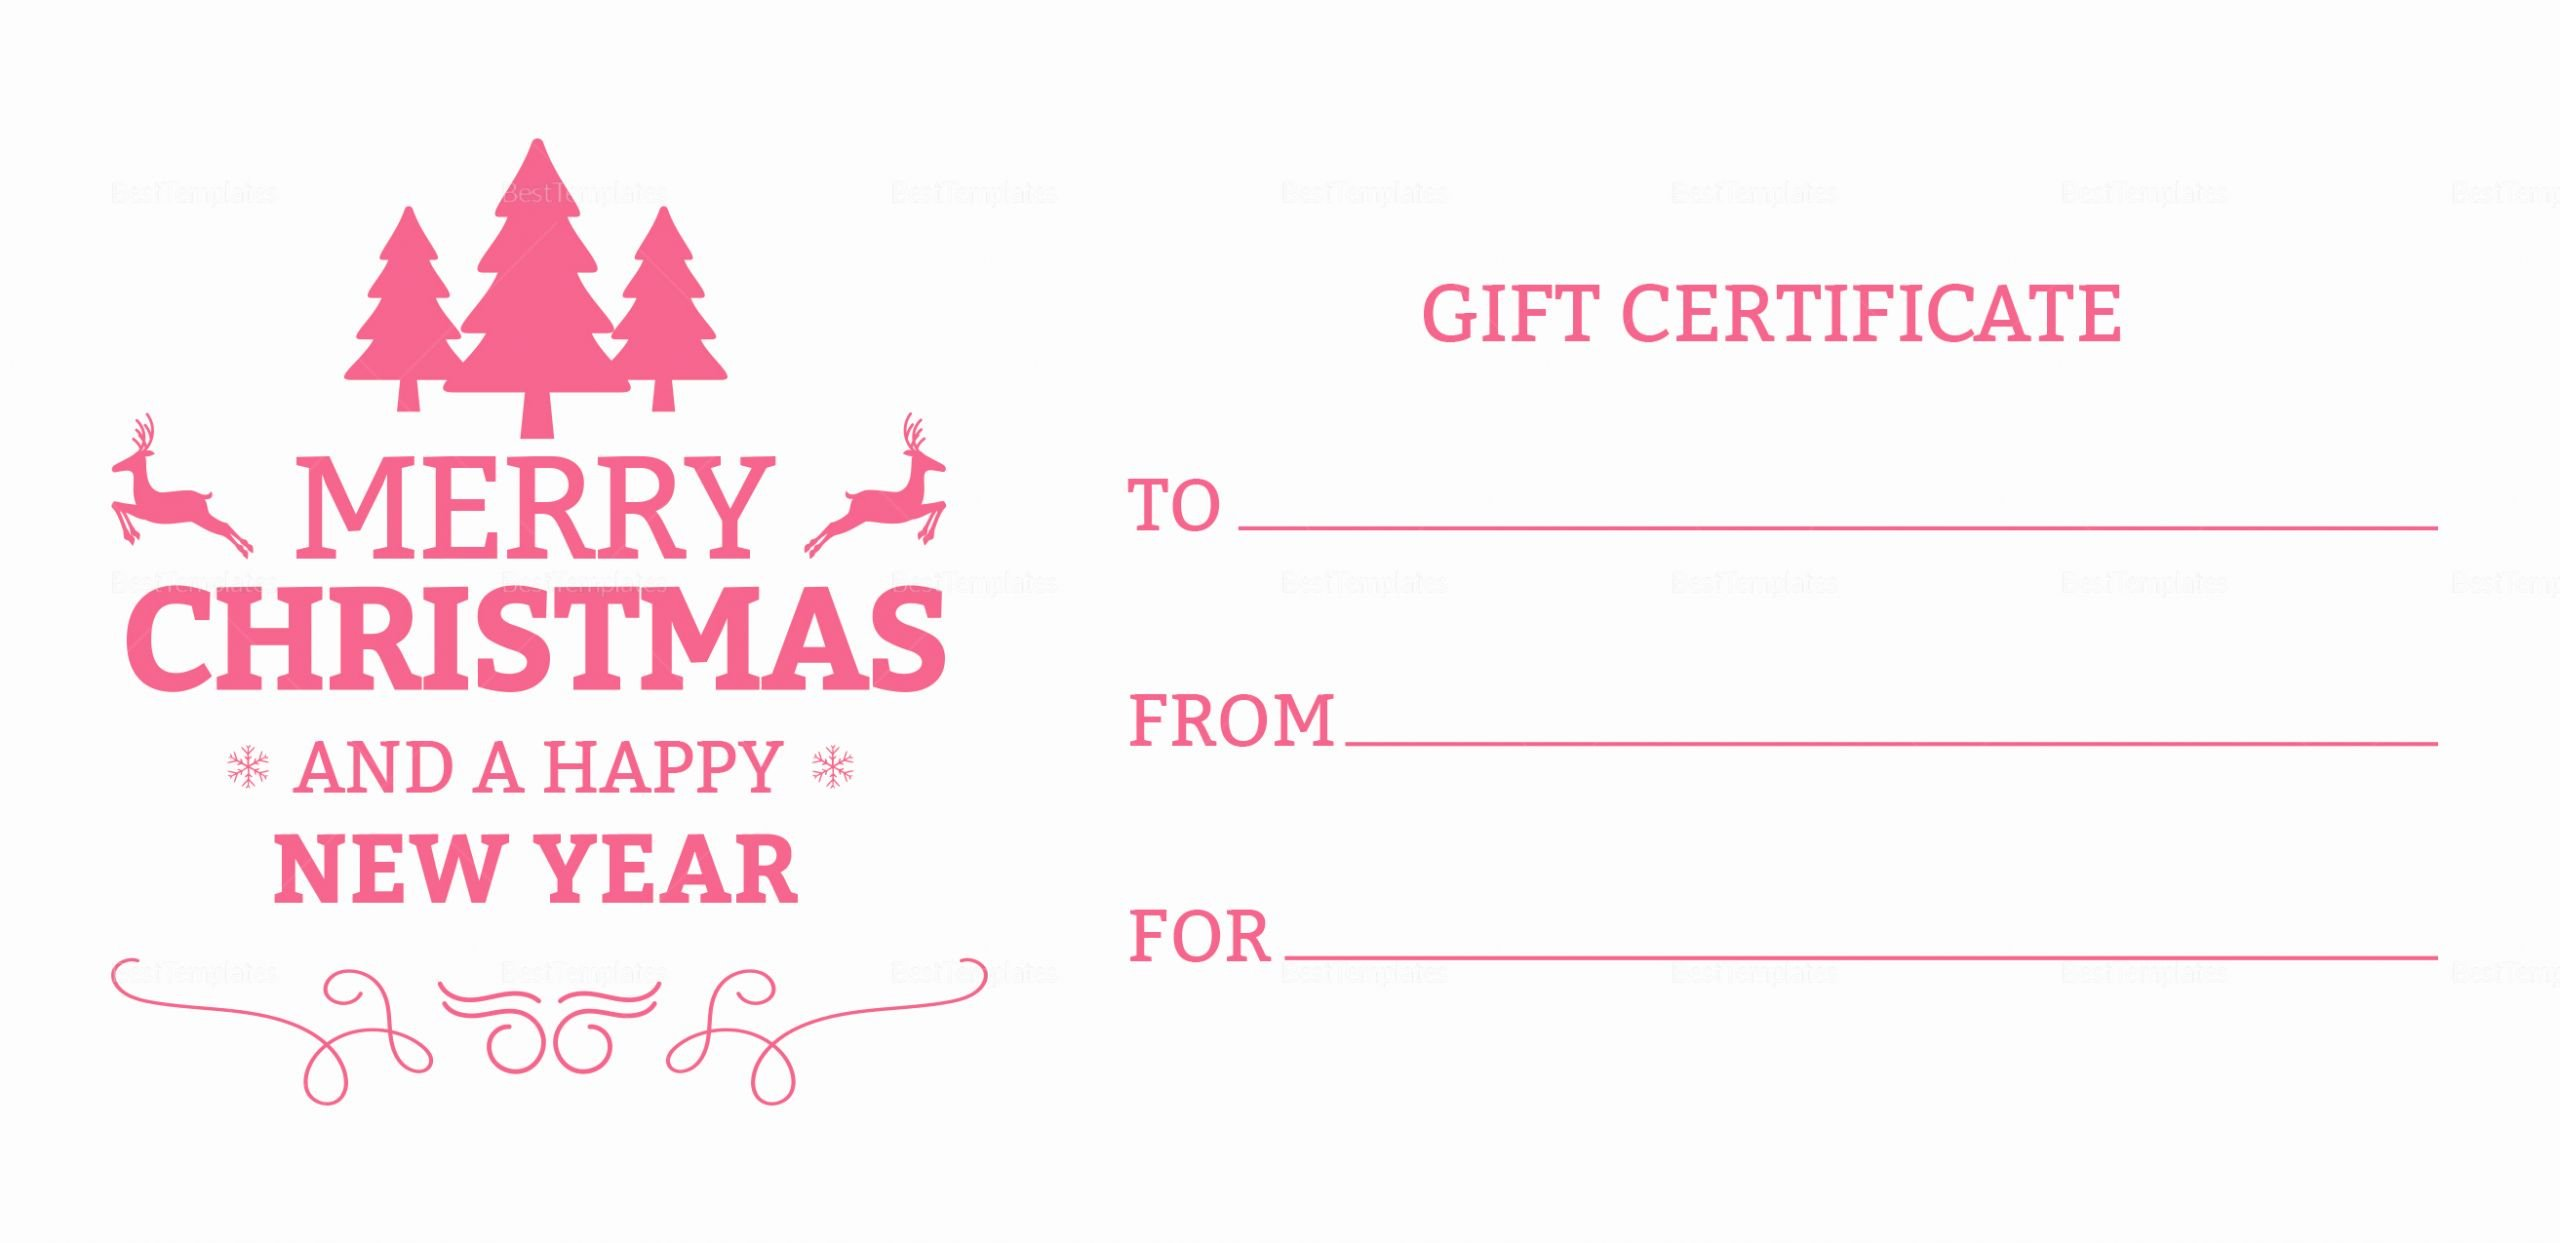 Photoshop Gift Certificate Template Awesome Modern Christmas Gift Certificate Template In Adobe Shop